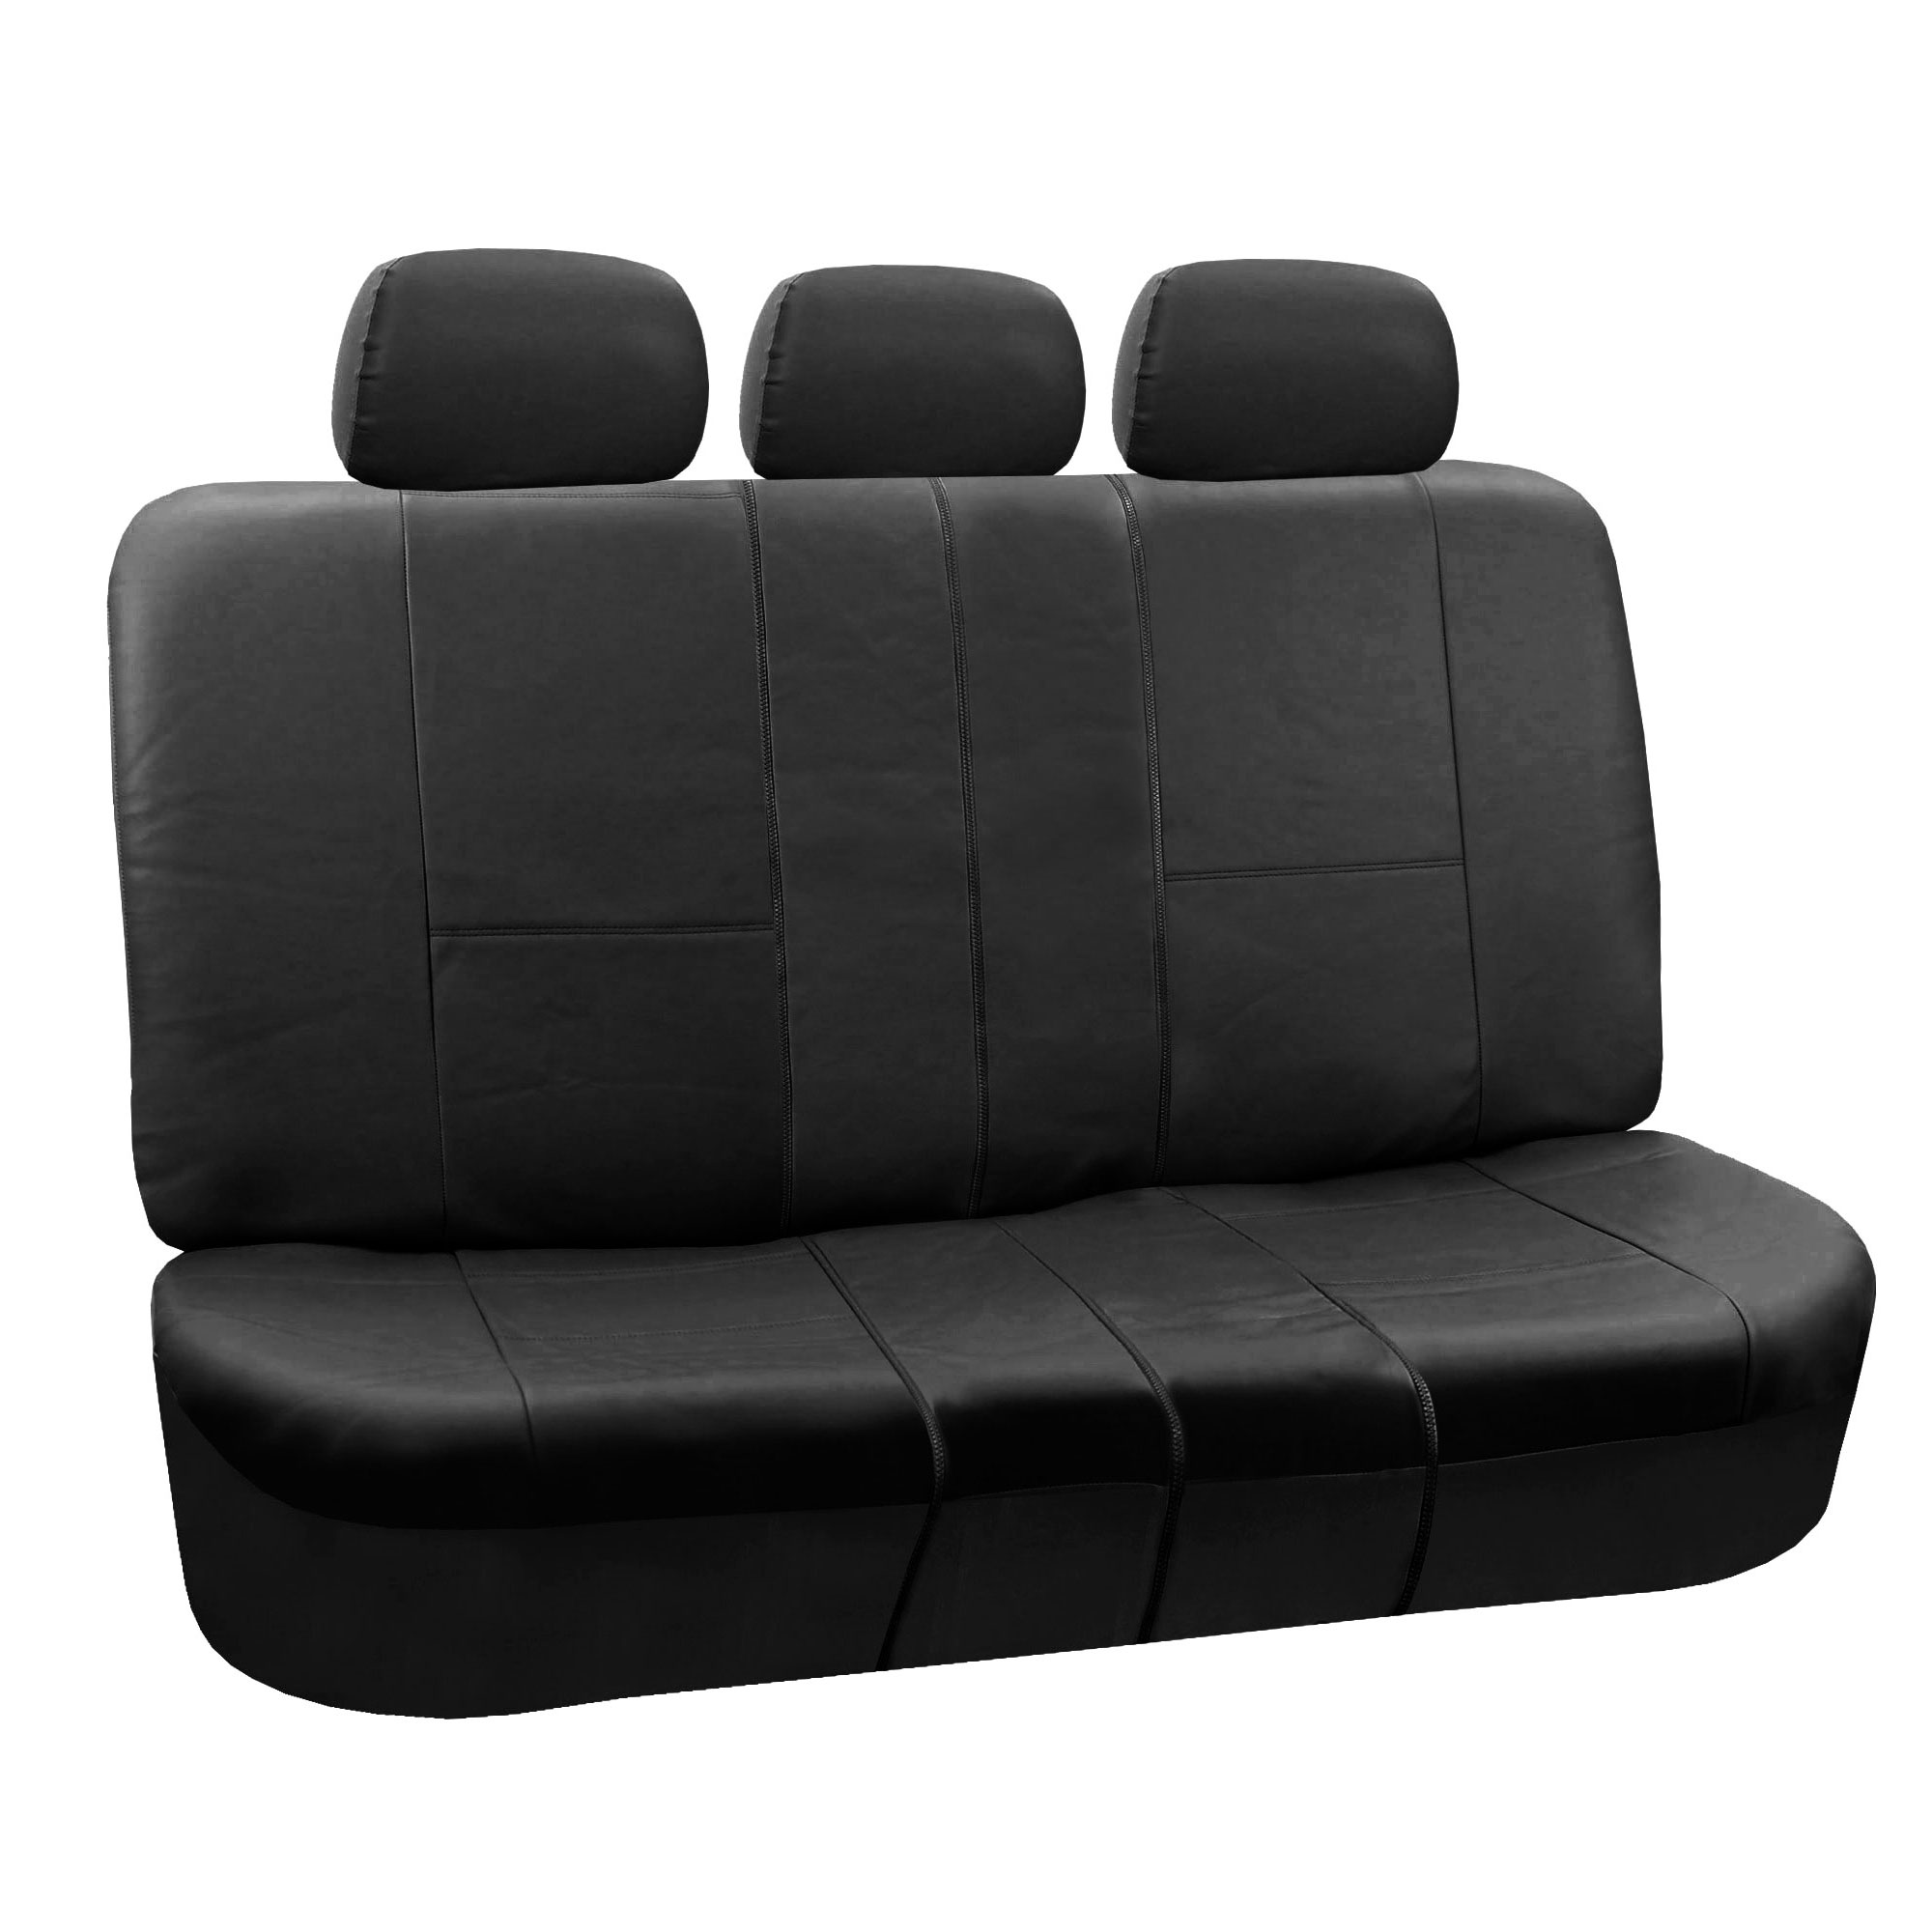 Pu Leather Rear Back Seat Covers Set Top Quality For Suv